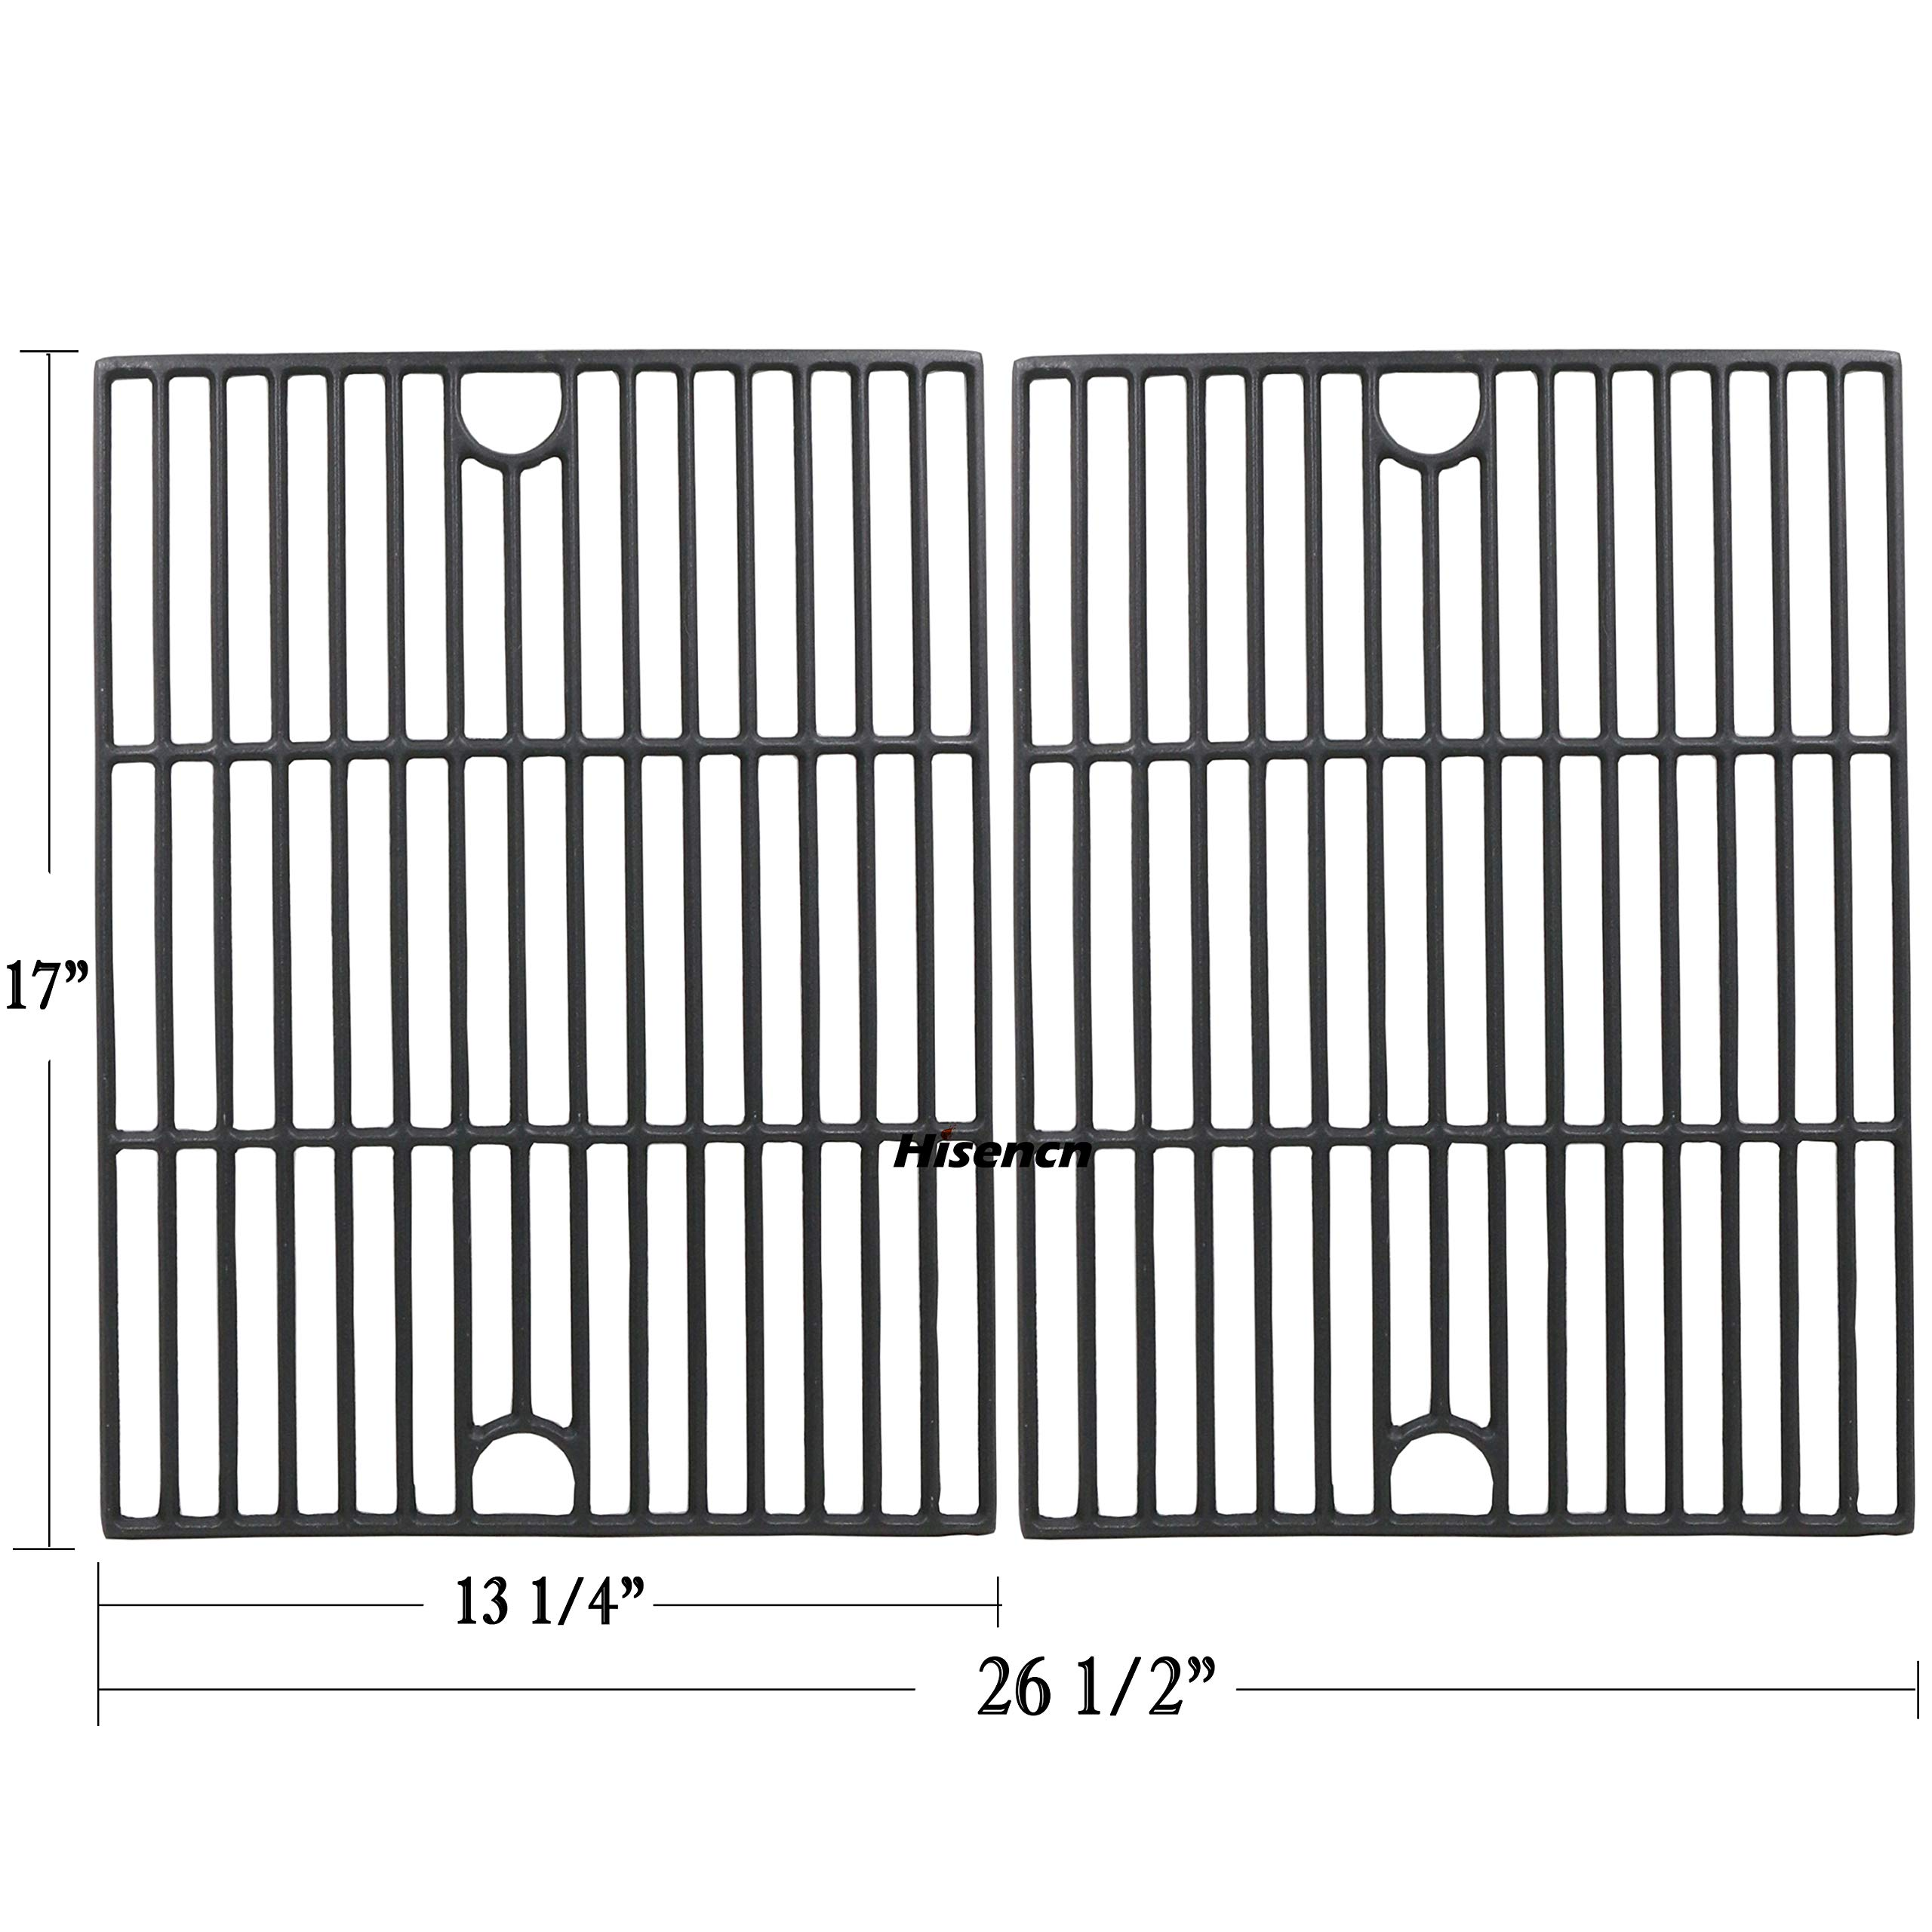 Hisencn Repair Parts Matte Porcelain Cast Iron Cooking Grids Replacement for Nexgrill 720-0888, 720-0670A, 720-0830H, Uniflame GBC981, Kenmore 41516106210 415.16106210 Gas Grill Grates, 17 inch